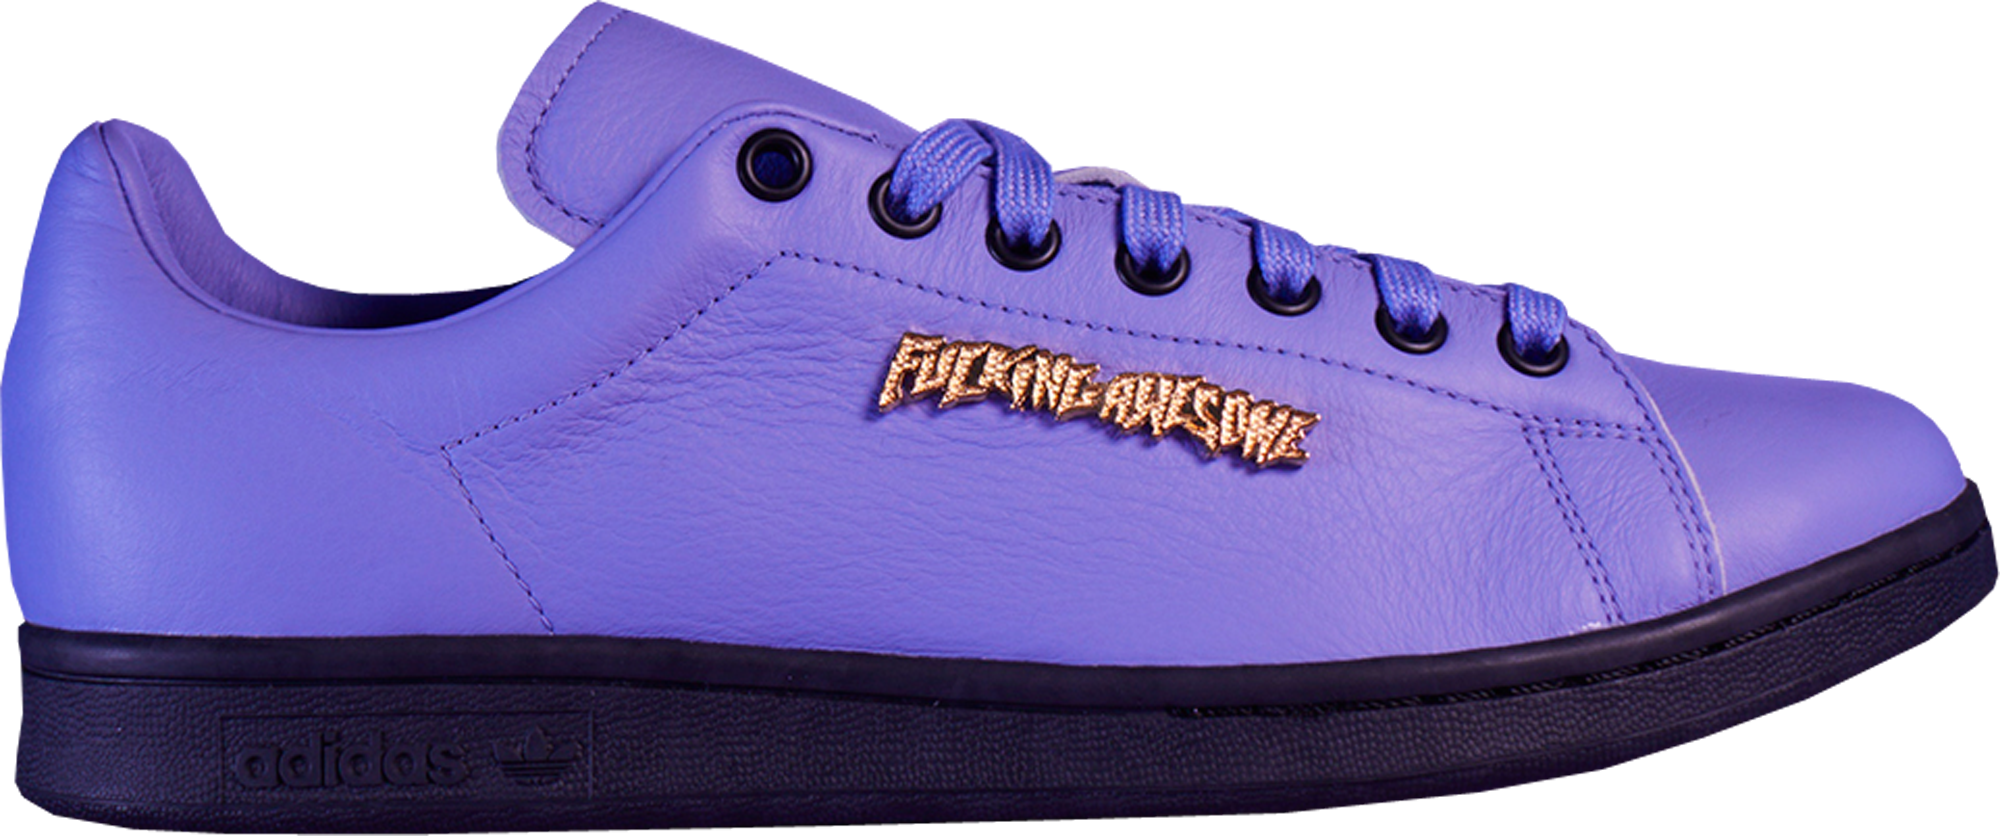 adidas-stan-smith-fucking-awesome-purple by stockx